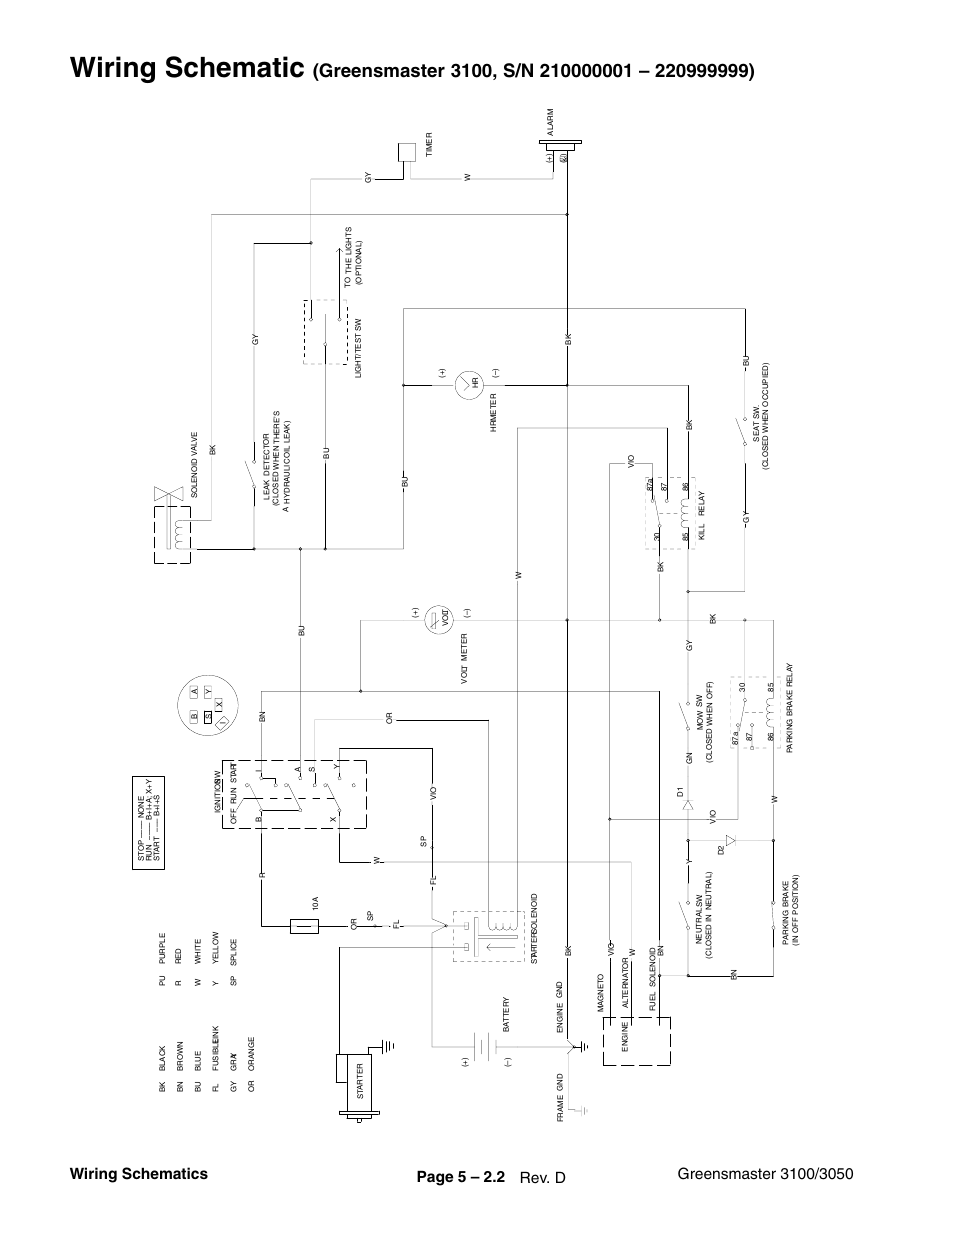 Wiring schematic | Toro GREENSMASTER 3100 User Manual | Page 104 / 234 |  Original modeManuals Directory